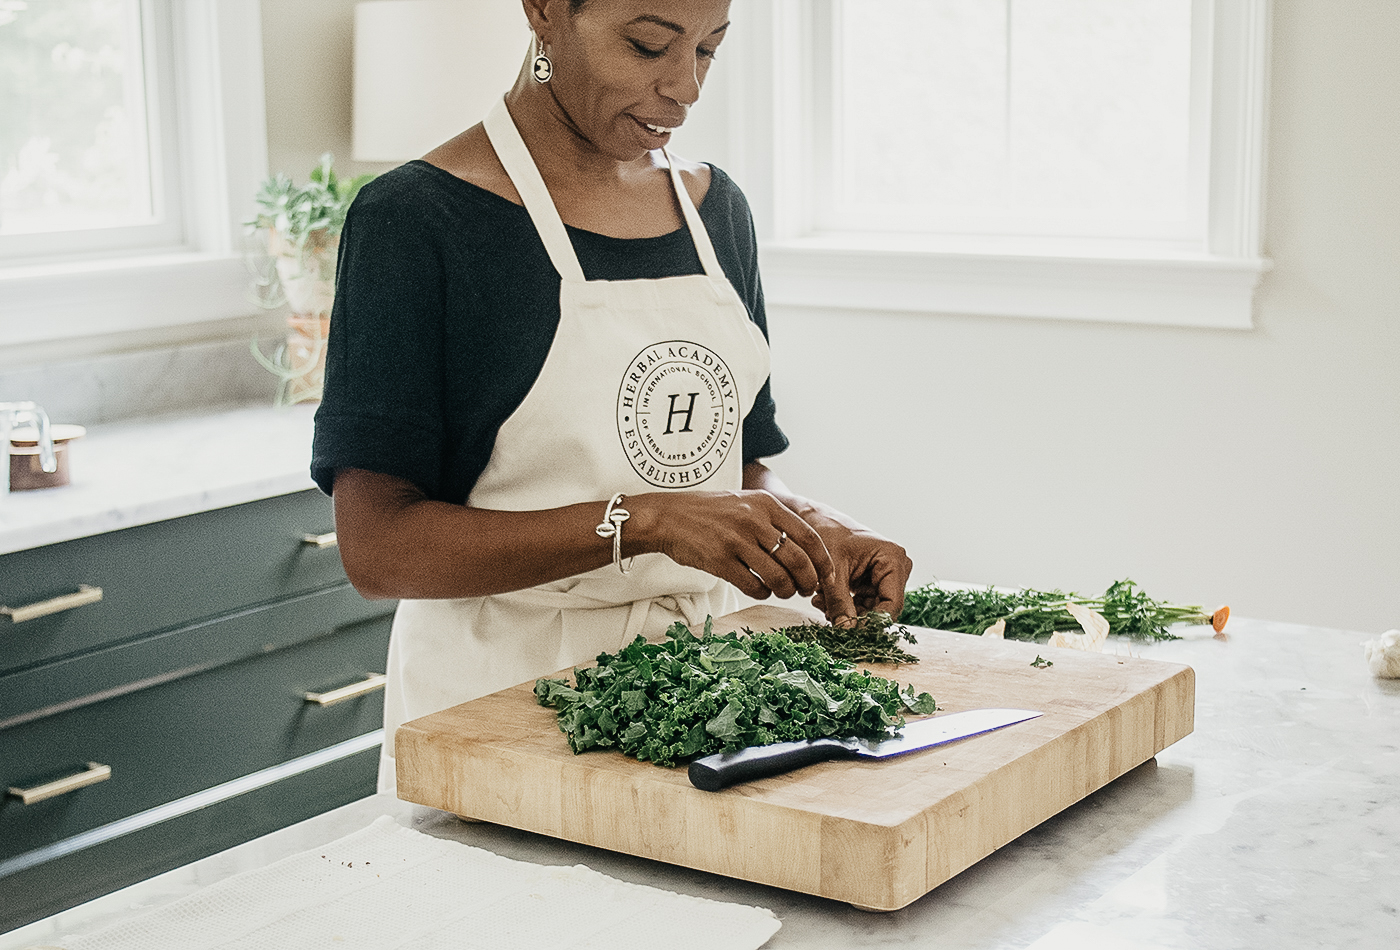 Food-is-the-foundation-presented-by-Herbal-Academy-foraging